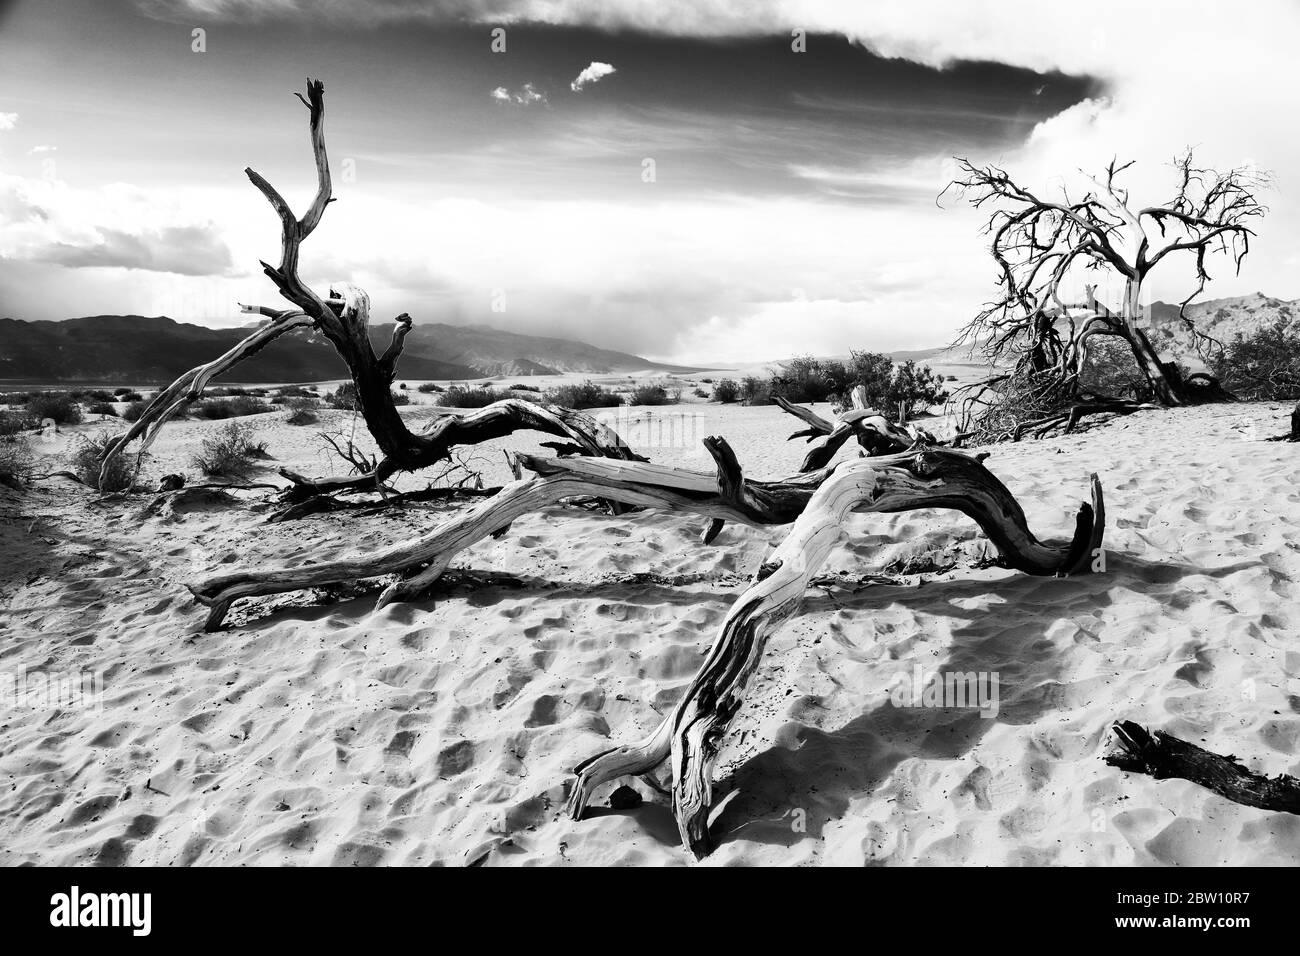 Mesquite Tree at Mesquite Flats Sand Dunes, Stovepipe Wells, Death Valley National Park, California, USA Stock Photo